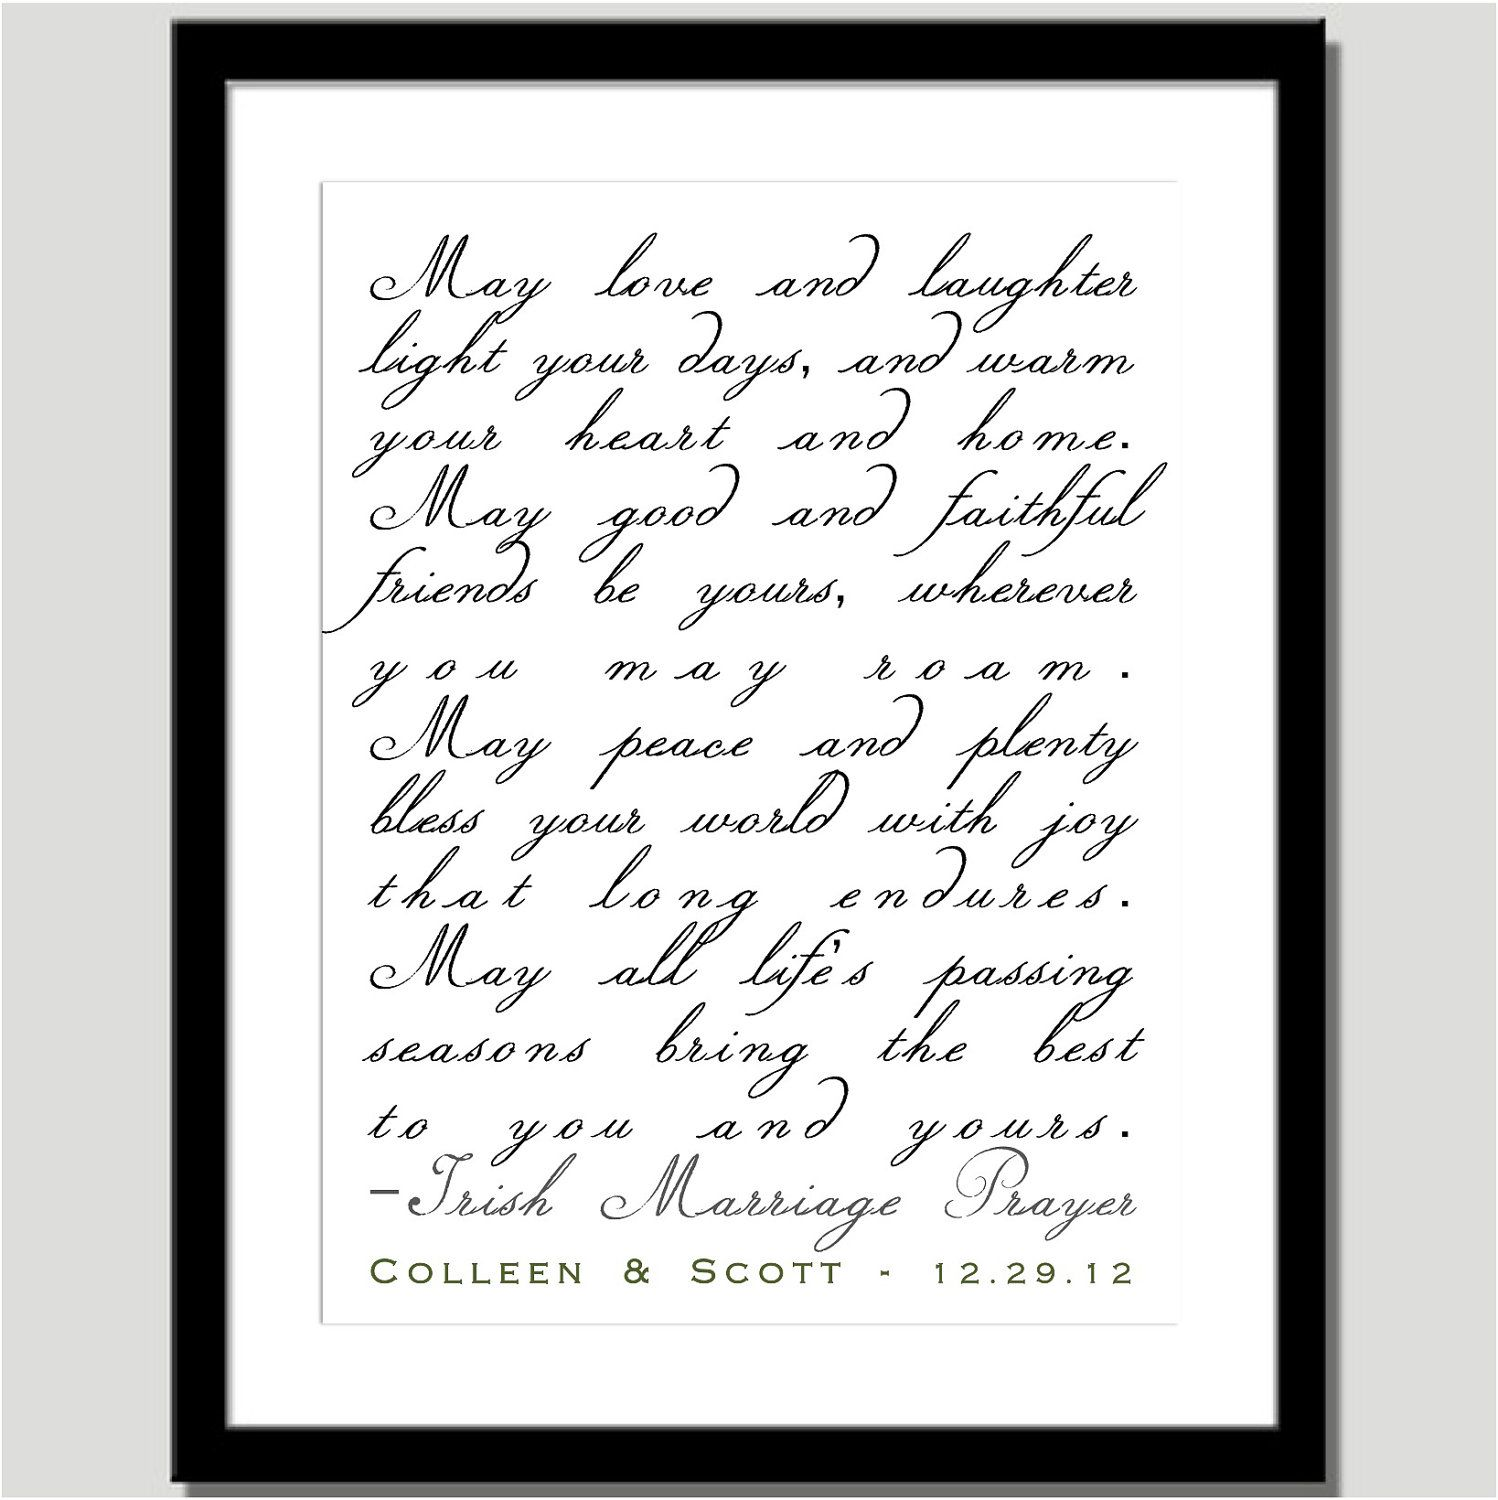 Irish Marriage Prayer Personalized - Great Wedding, Anniversary or ...